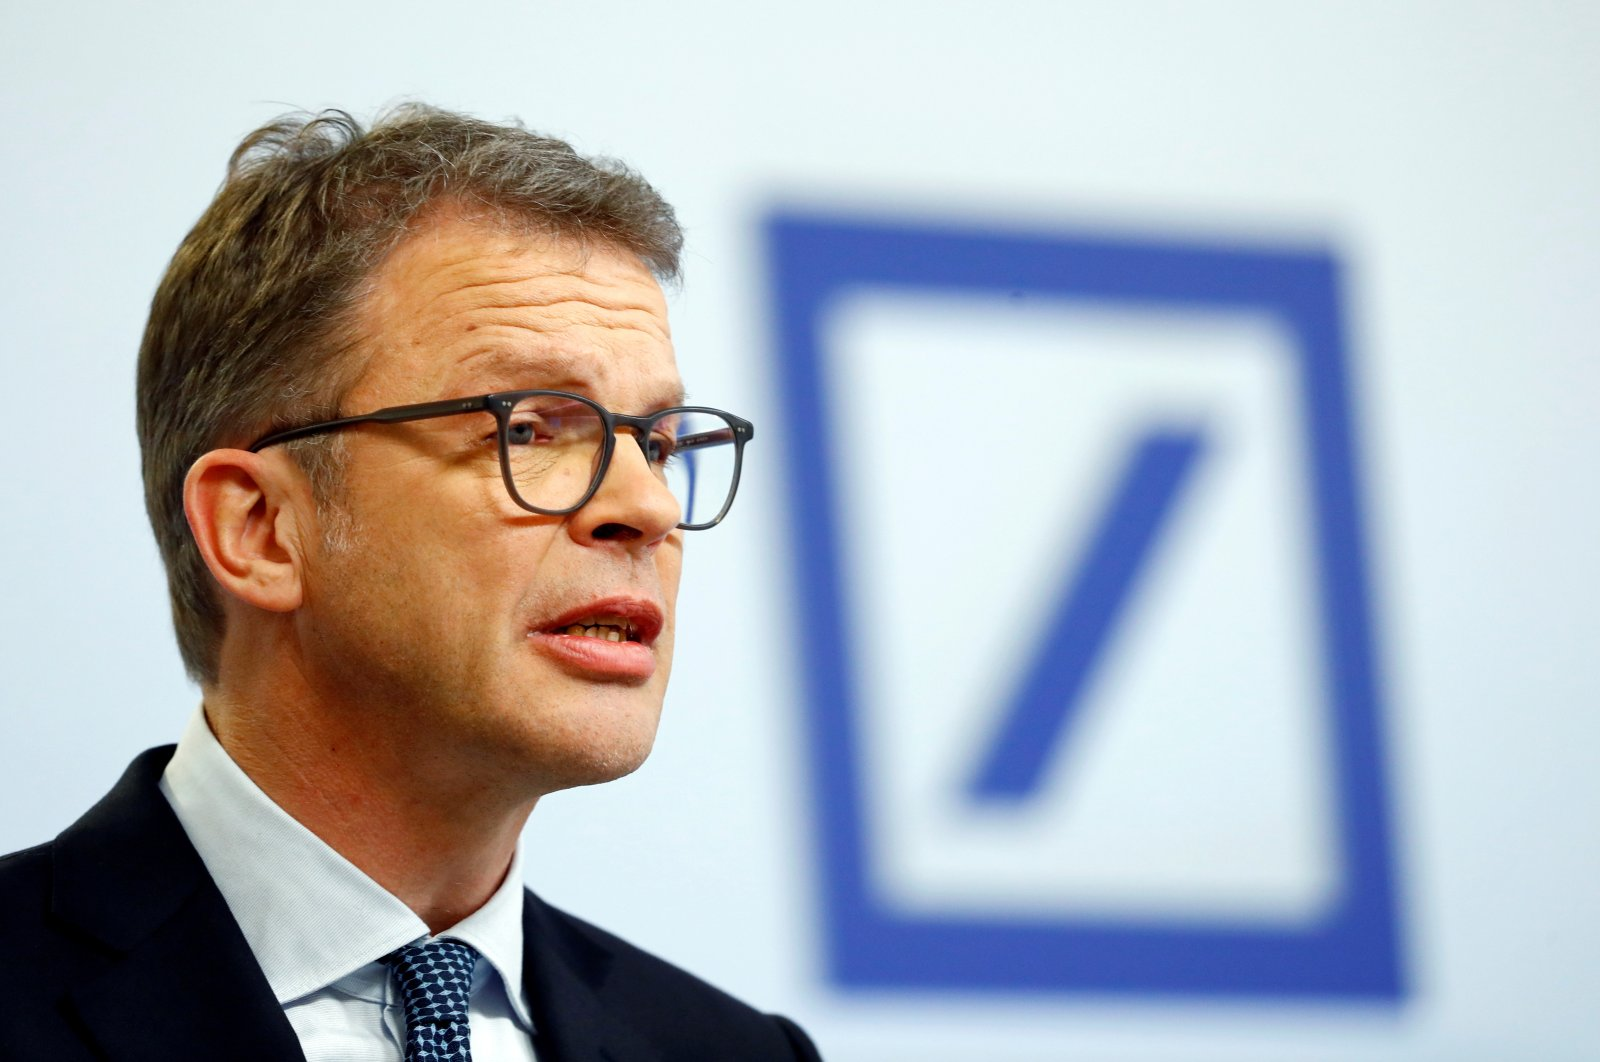 Christian Sewing, CEO of Deutsche Bank AG, speaks during the bank's annual news conference in Frankfurt, Germany, Jan. 30, 2020. (Reuters Photo)